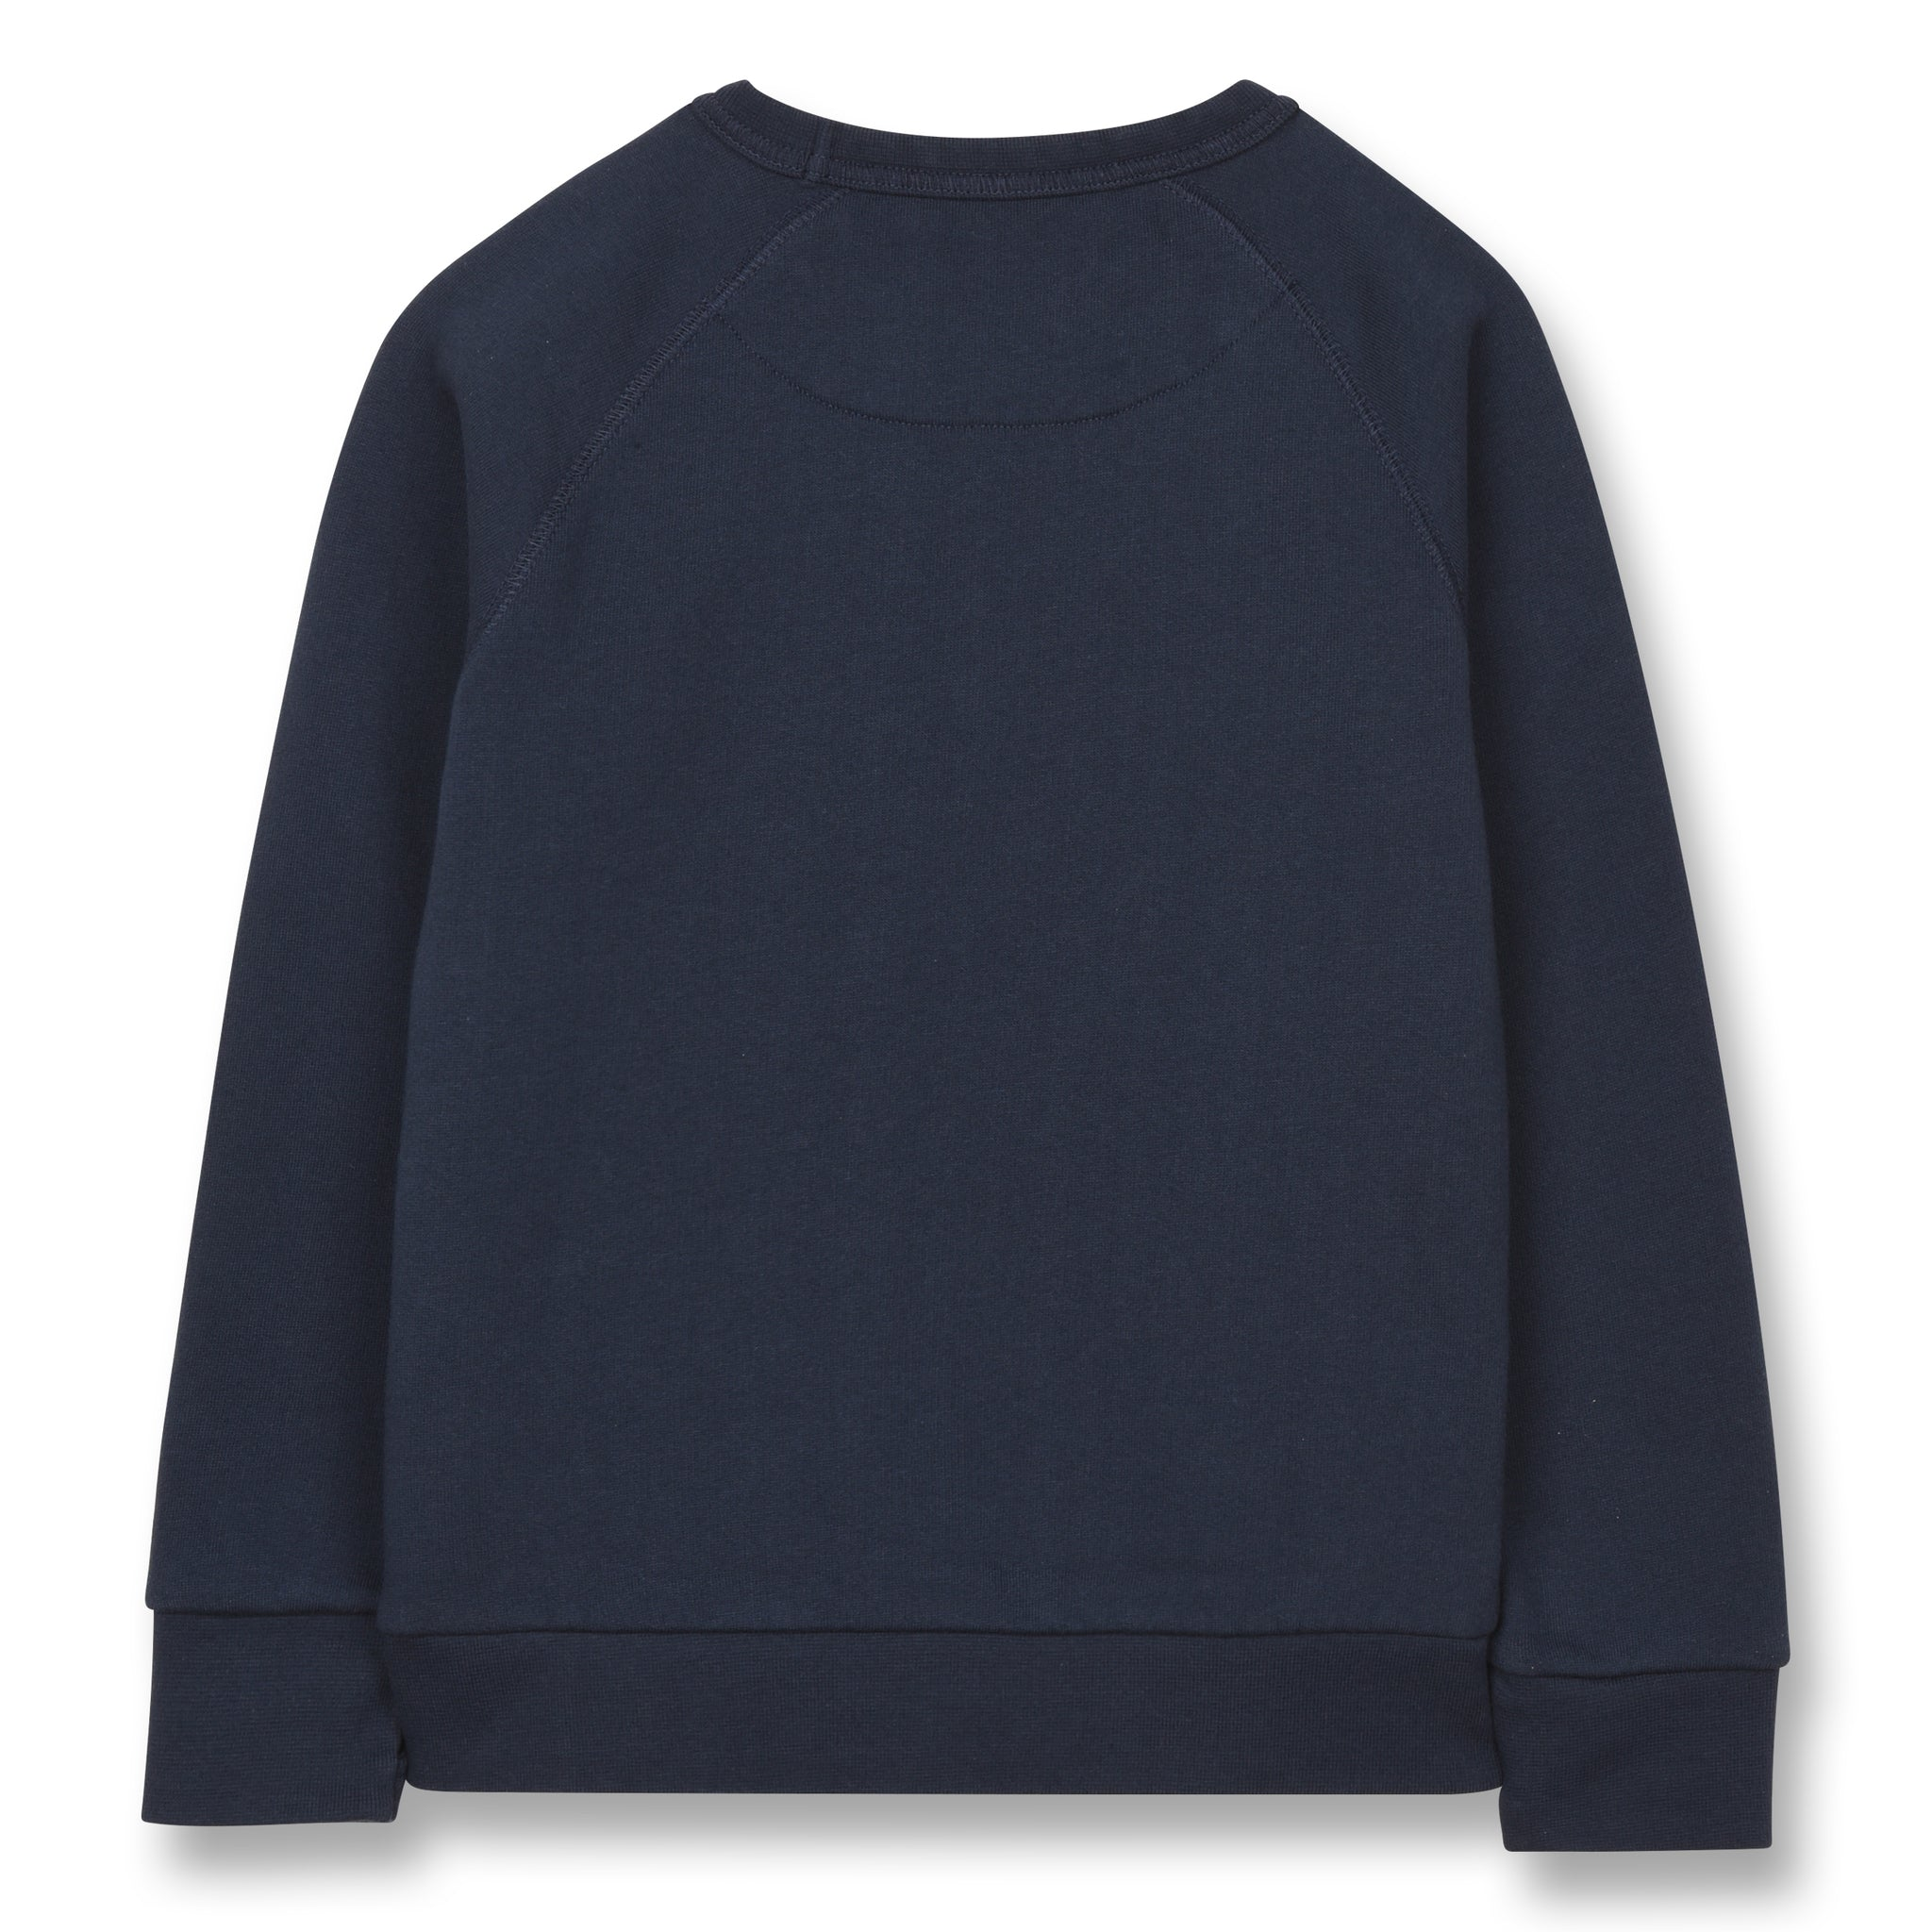 HANK Sailor Blue Ghost Rider - Raglan Sleeves Sweatshirt 2